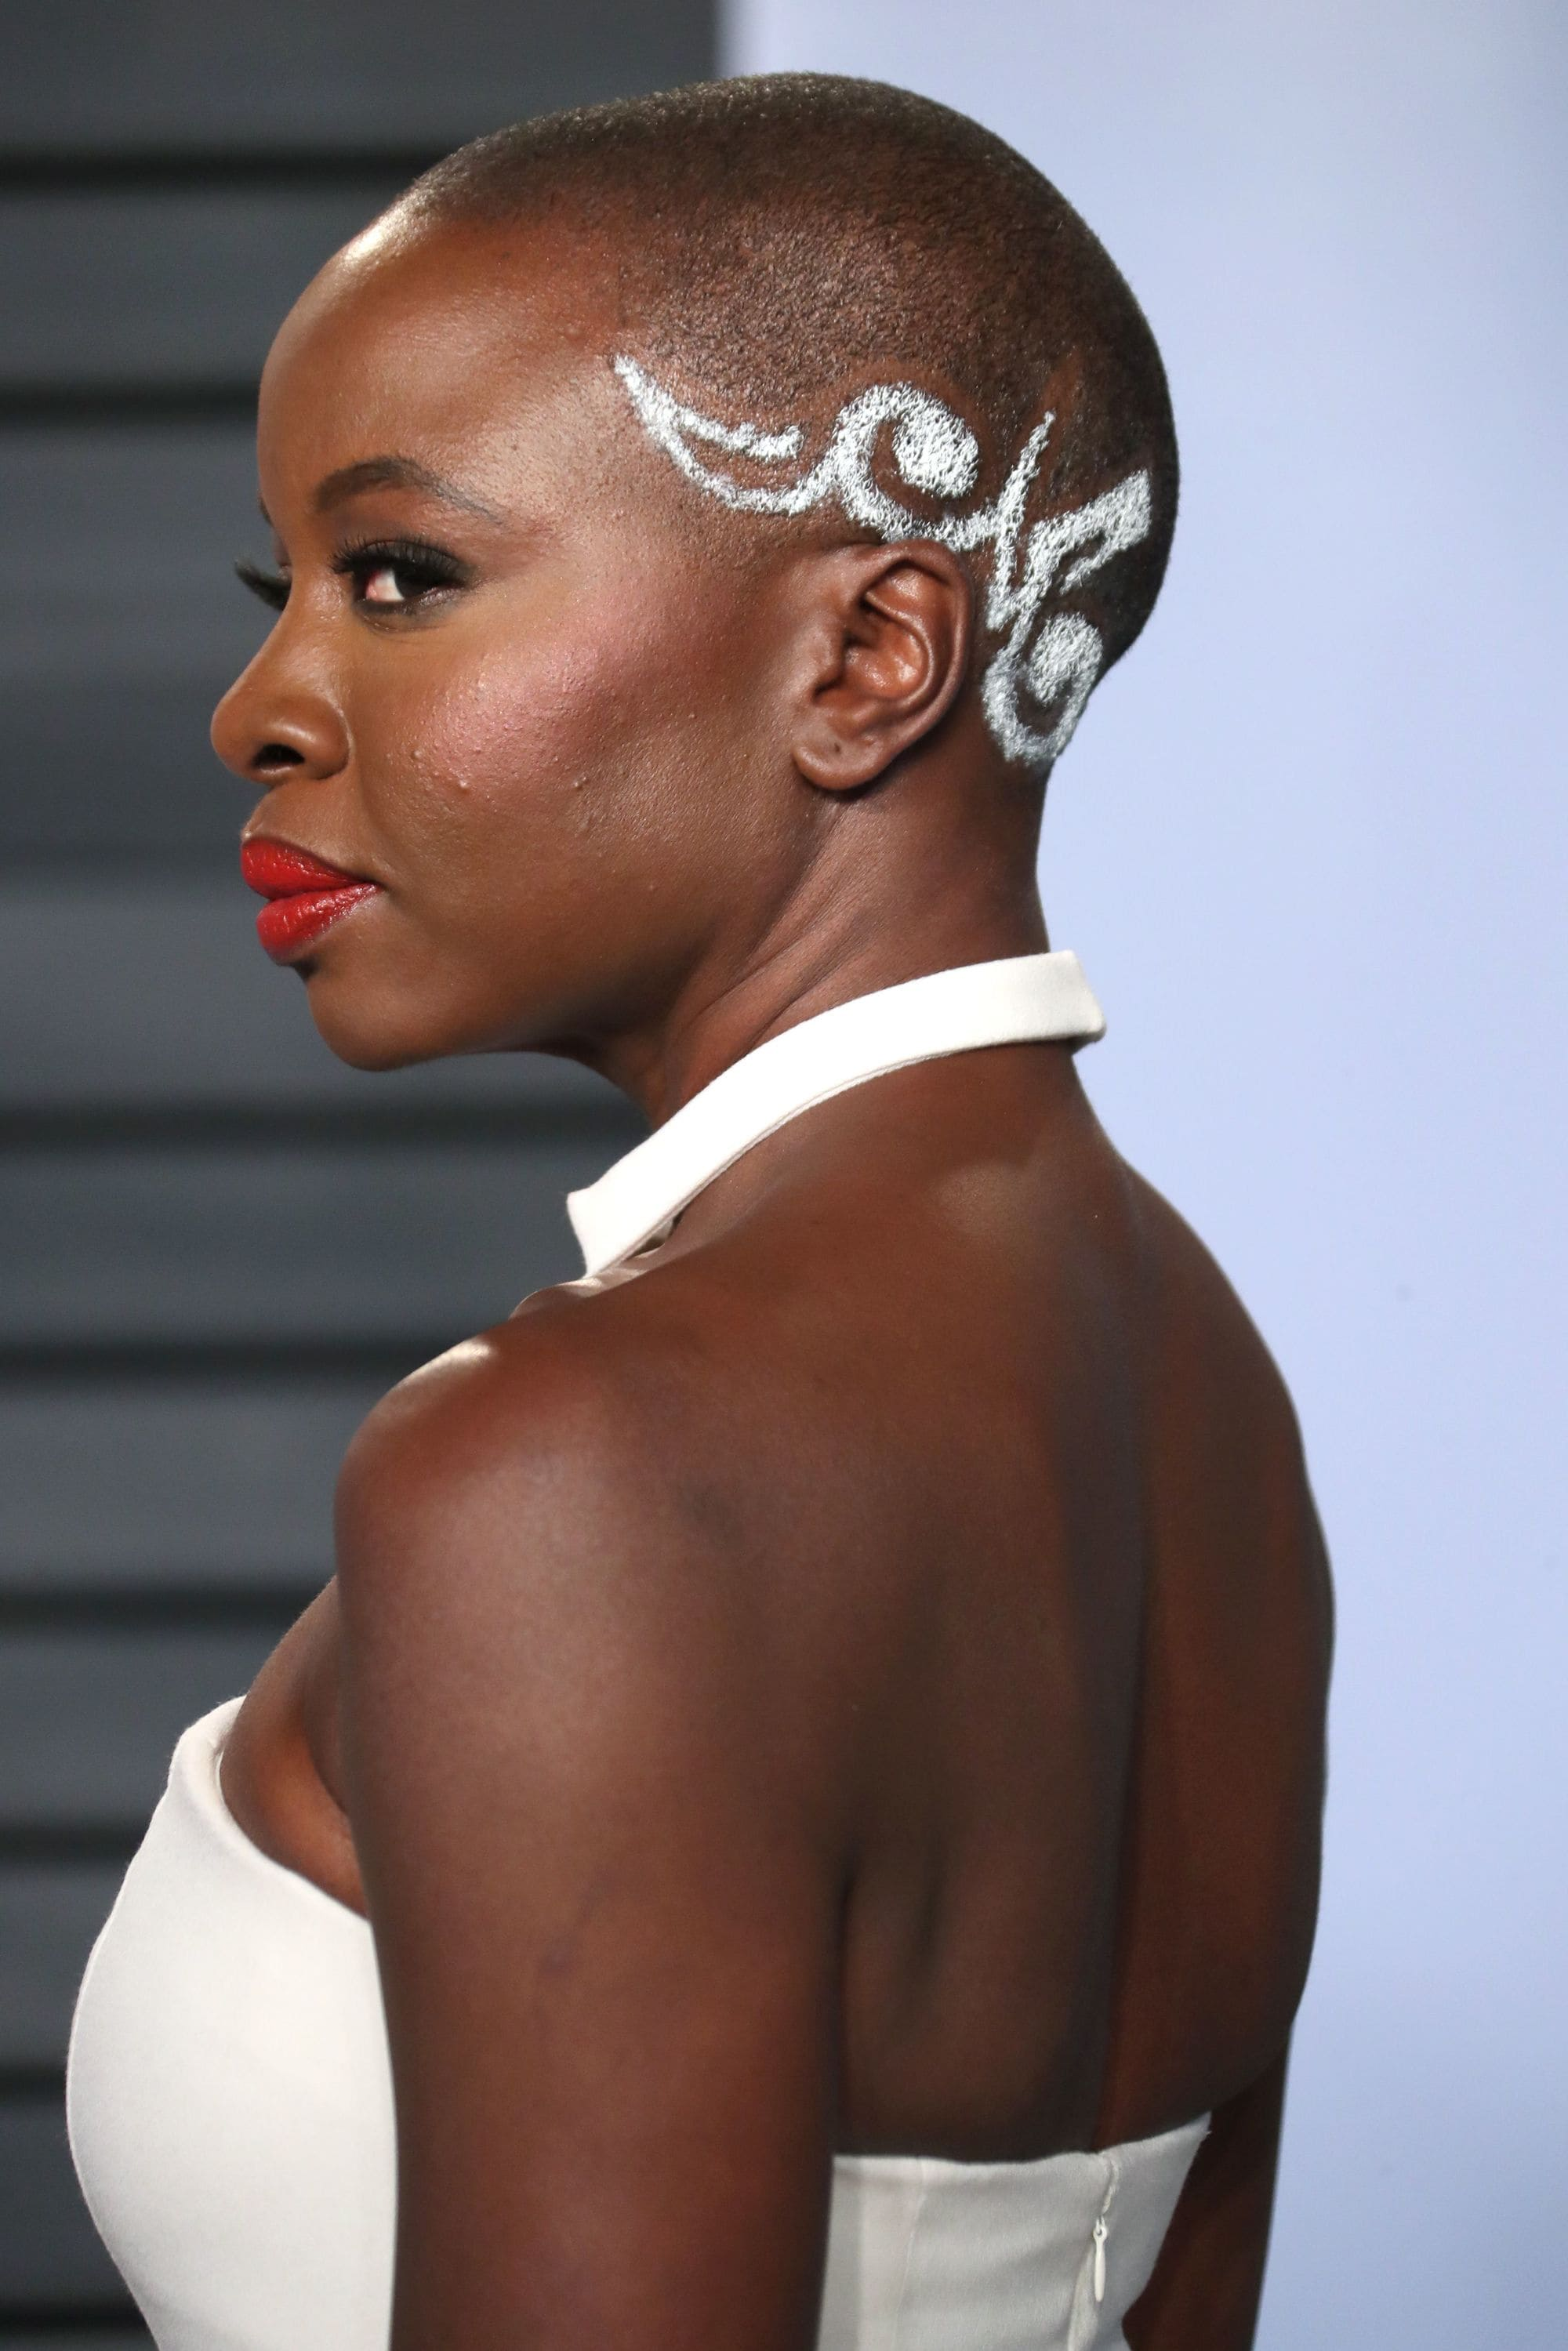 danai gurira shaved buzzcut with white pattern design on the side at movie awards wearing white dress